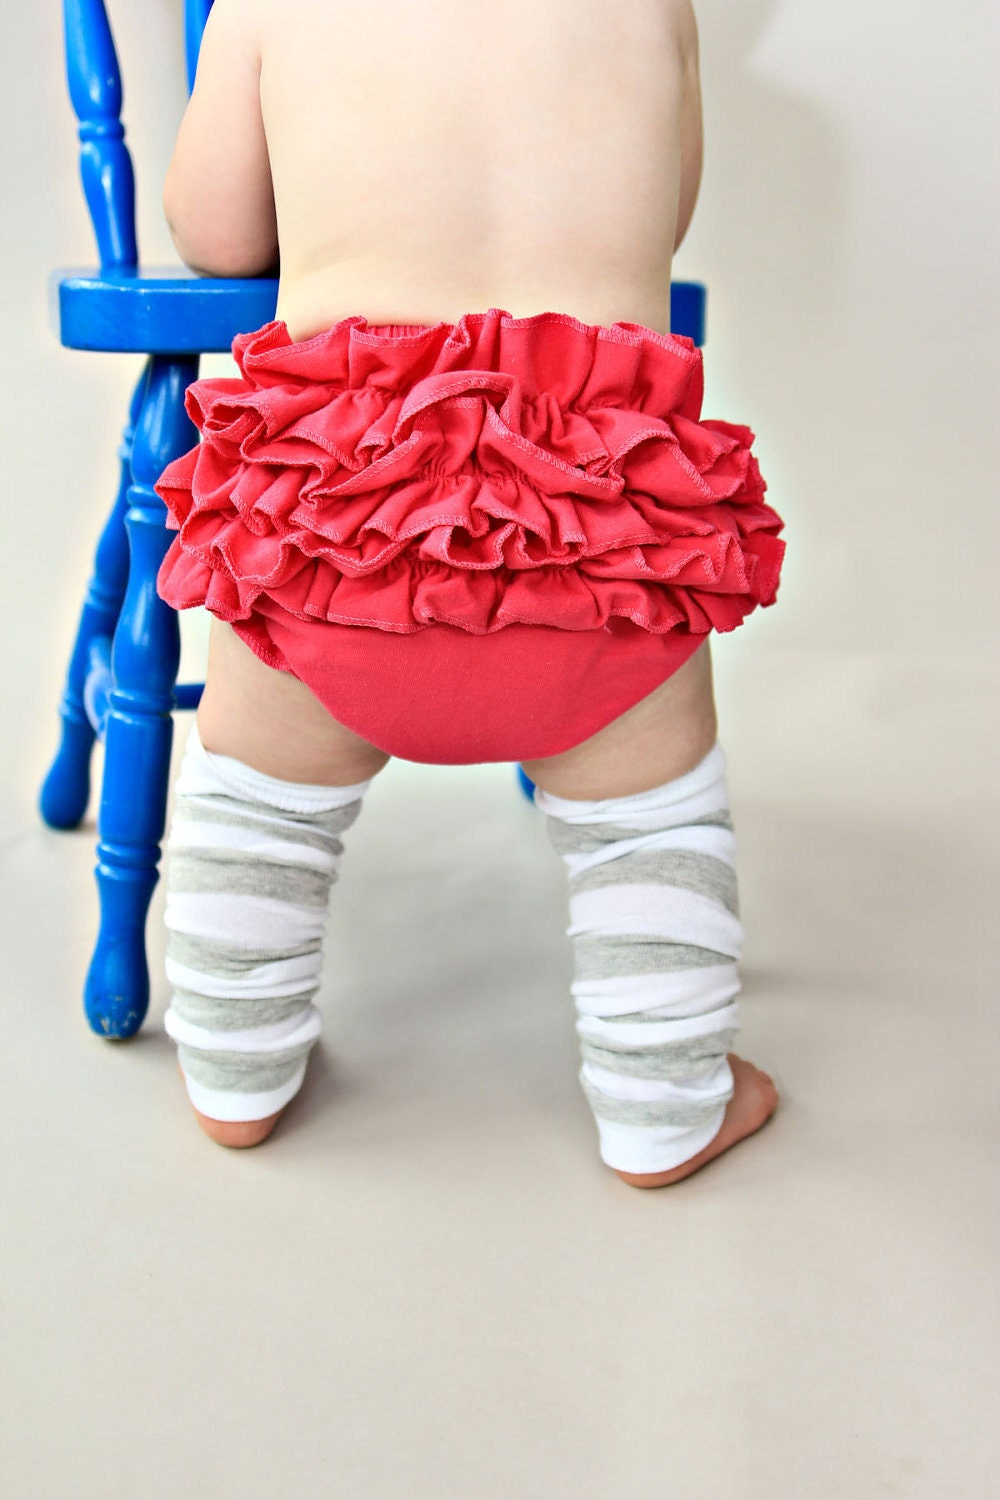 Ruffle bottom Bloomers in Dark Pink  READY TO SHIP convo me for sizes